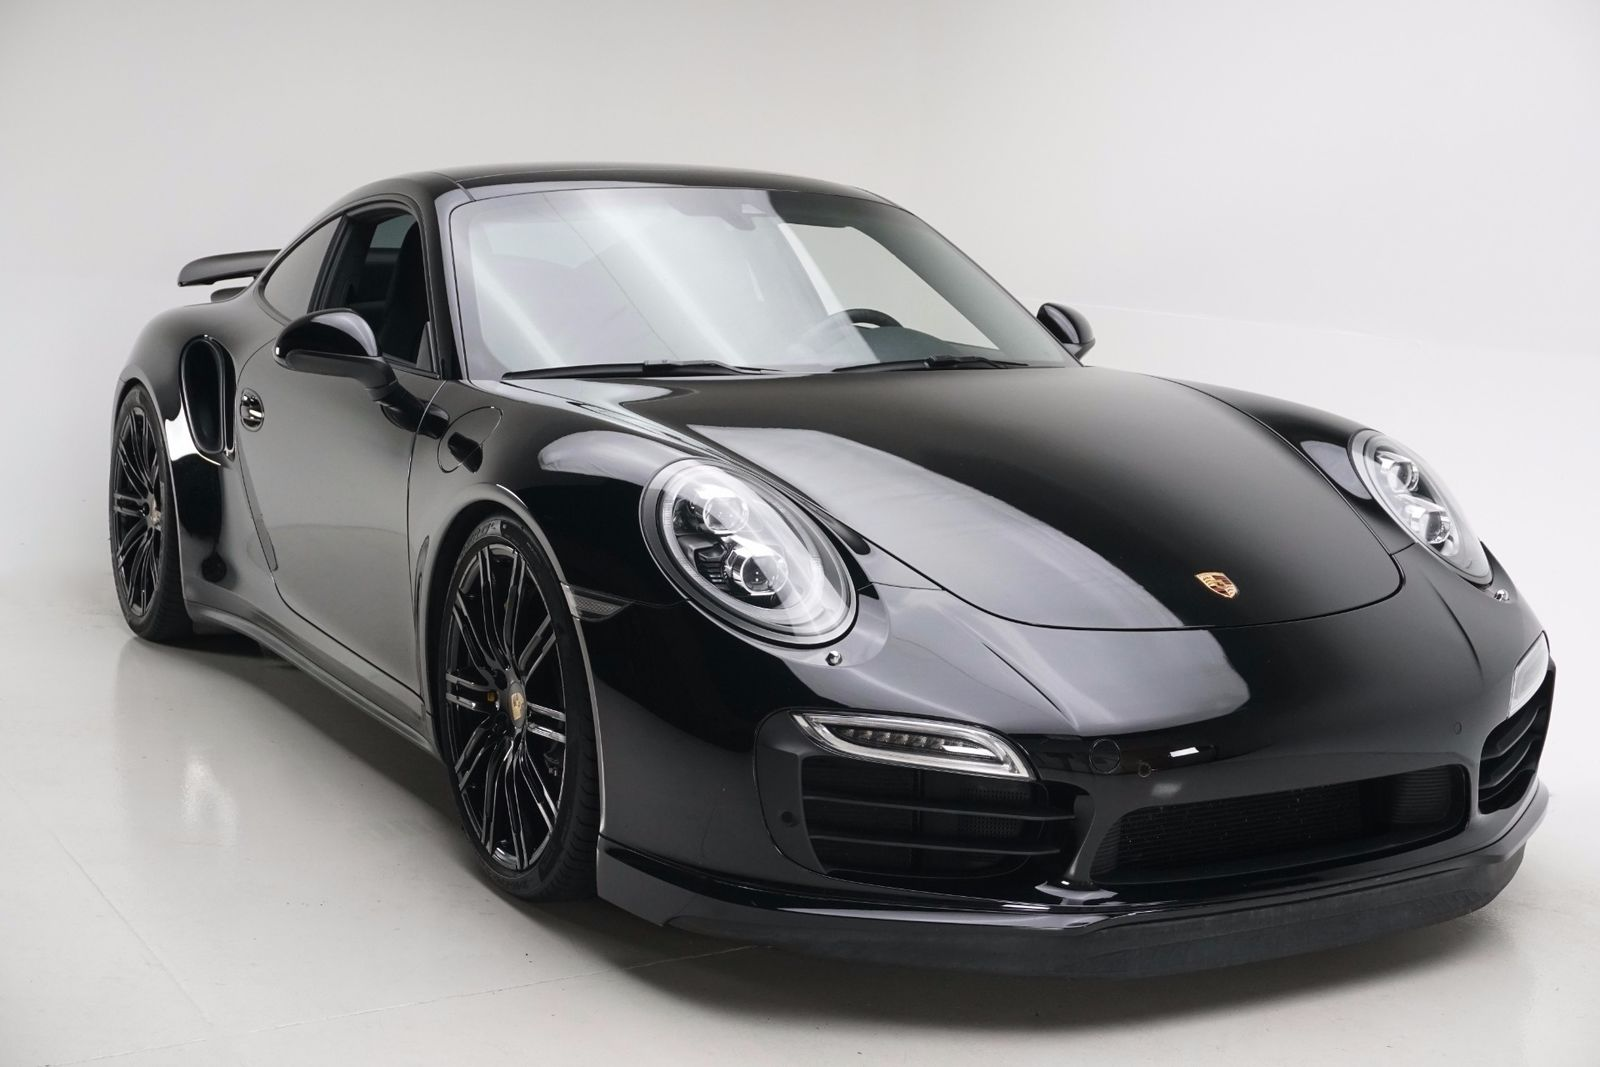 Great 2014 Porsche 911 Turbo S 2014 Porsche 911 Turbo S